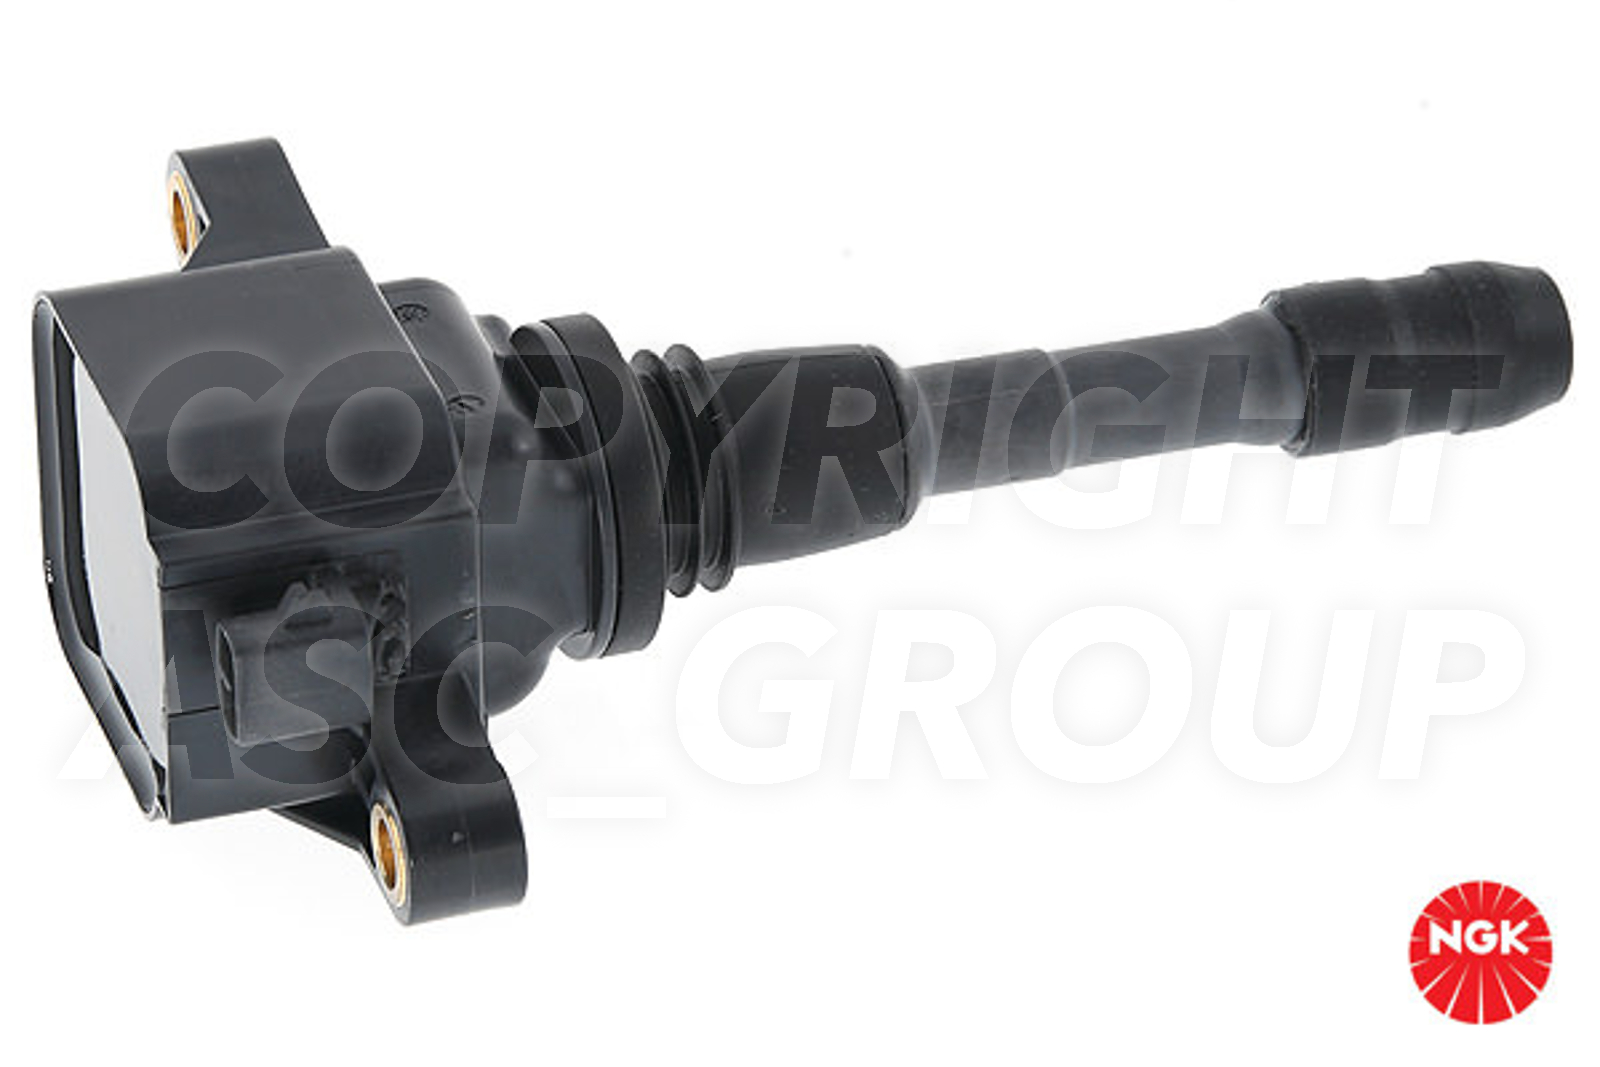 new ngk ignition coil pack renault megane mk 3 1 4 tce 130 convertable 2012 on ebay. Black Bedroom Furniture Sets. Home Design Ideas